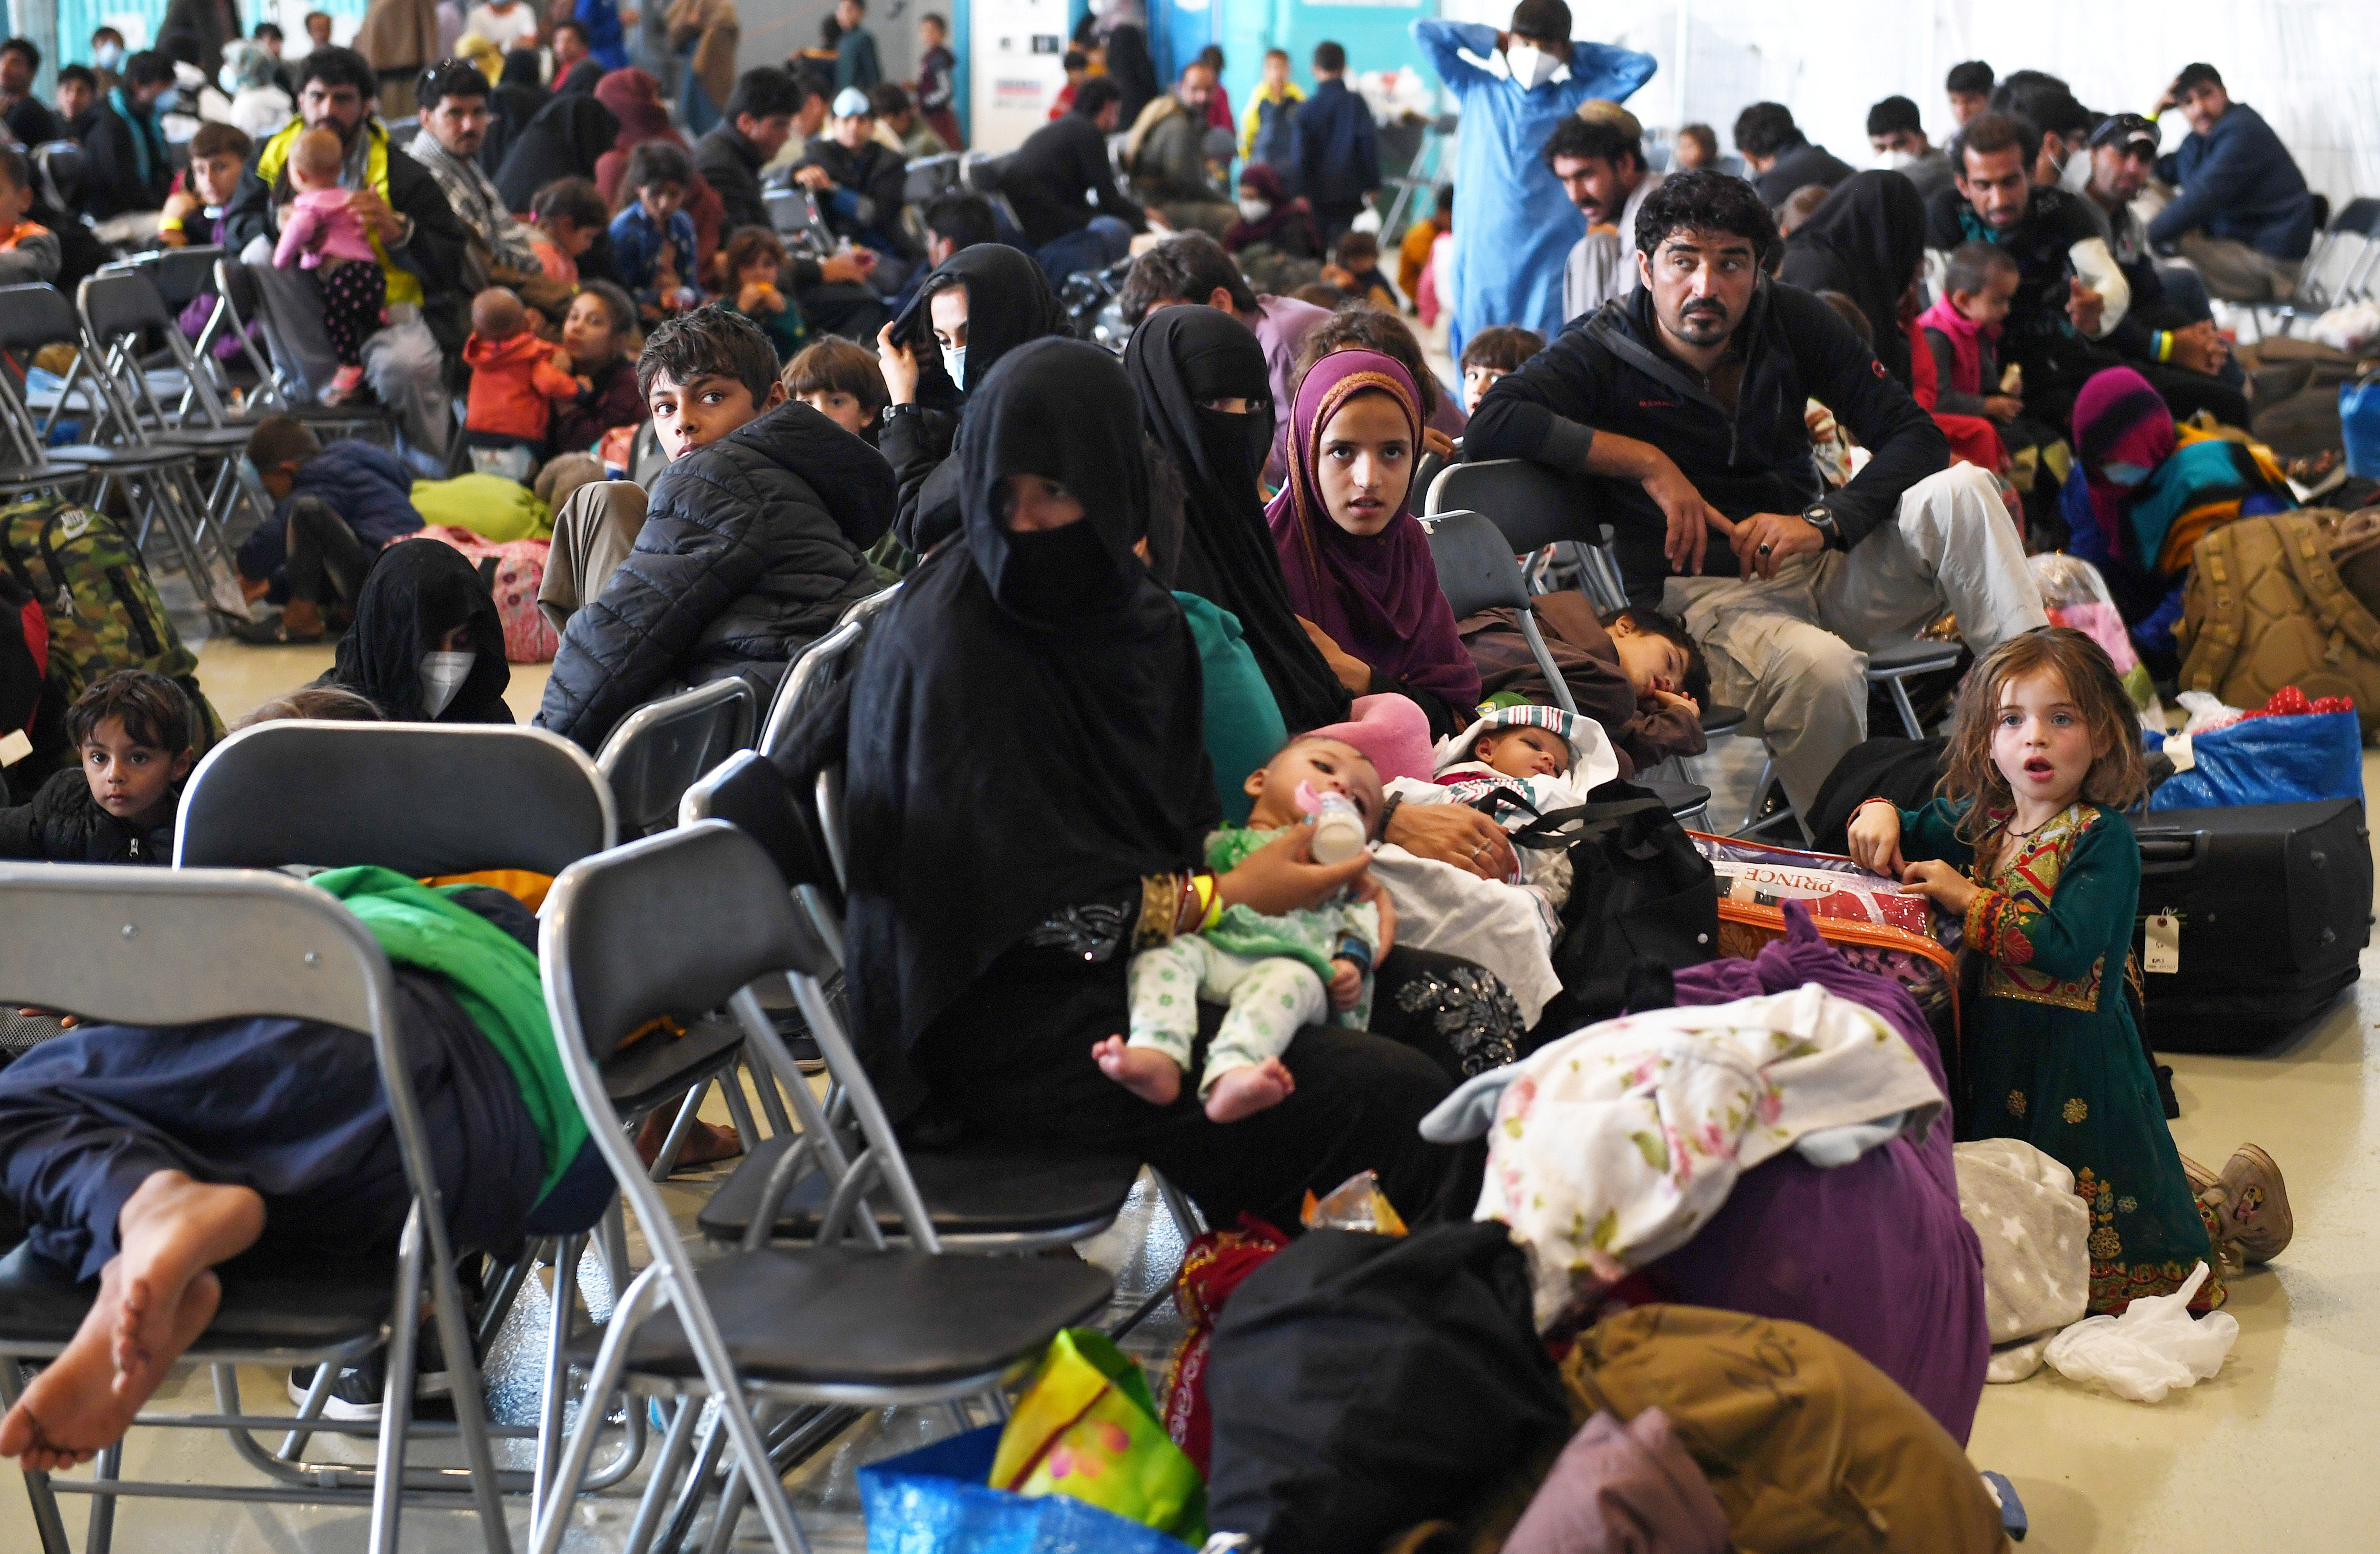 Afghan refugees are processed inside Hangar 5 at Ramstein Air Base in Germany, September 8, 2021. Olivier Douliery/Pool via REUTERS - RC2OLP9XQIQ2